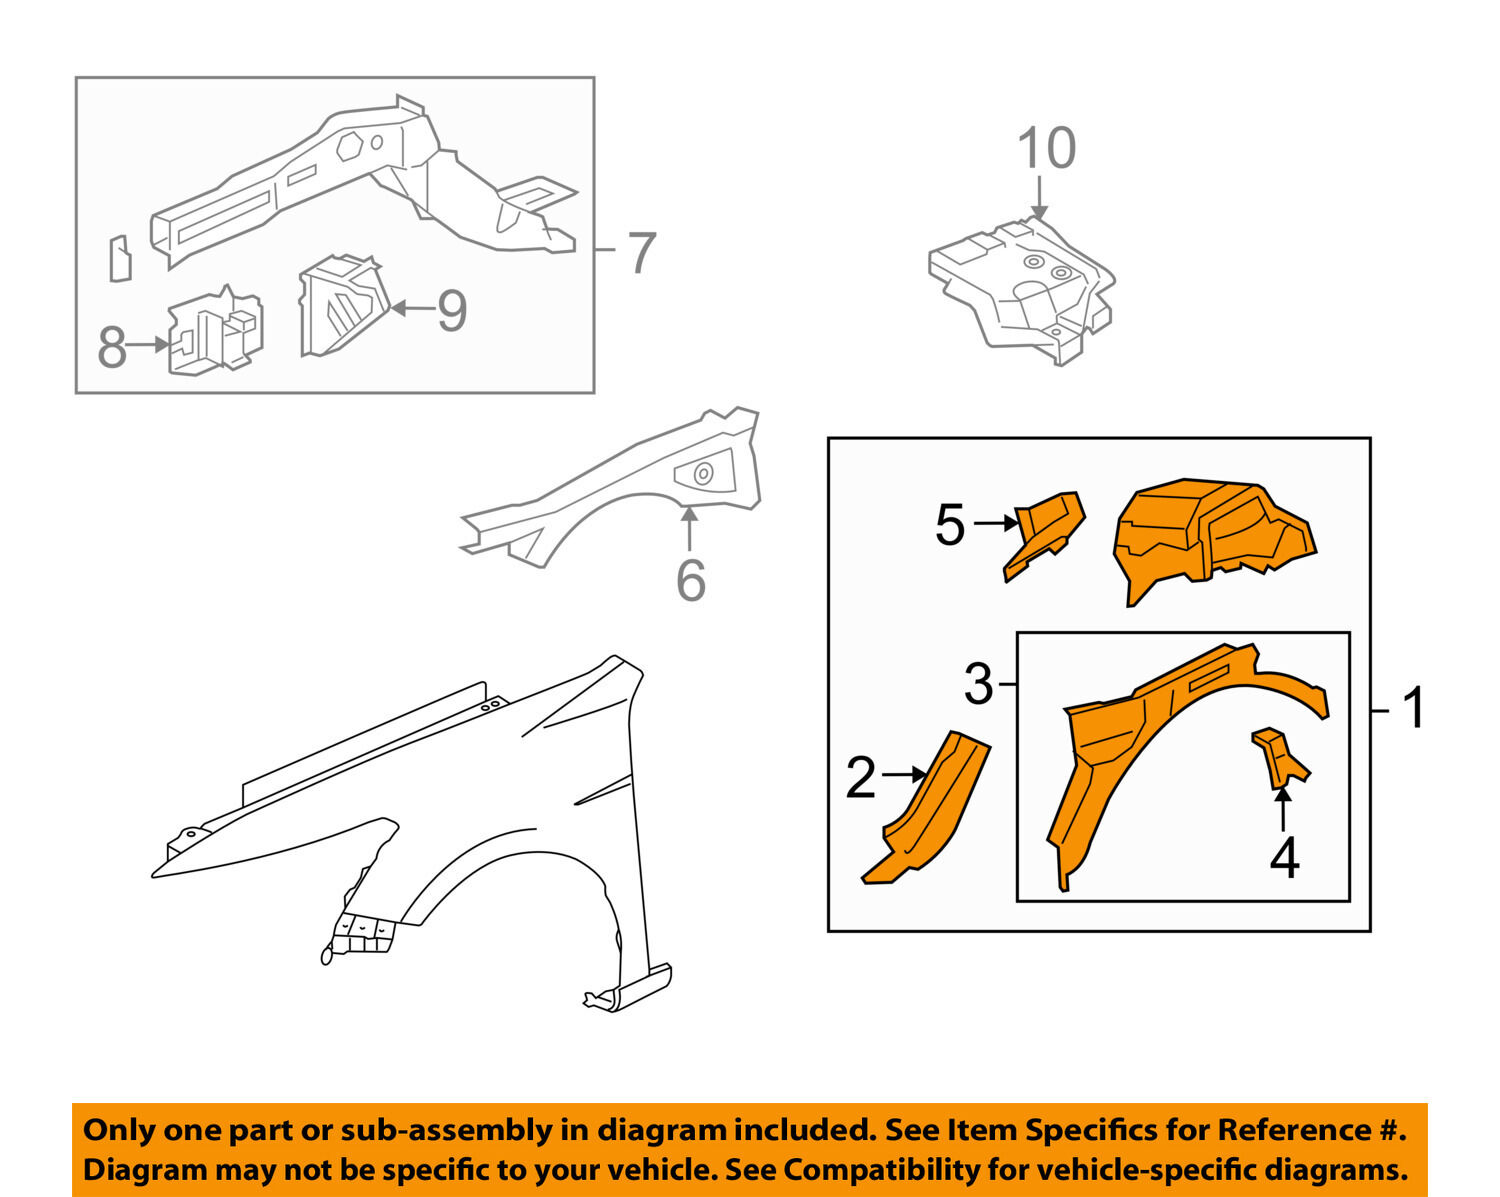 Honda Oem 08 12 Accord Front Fender Apron Panel Cover Left Diagram 1 Of 2only Available